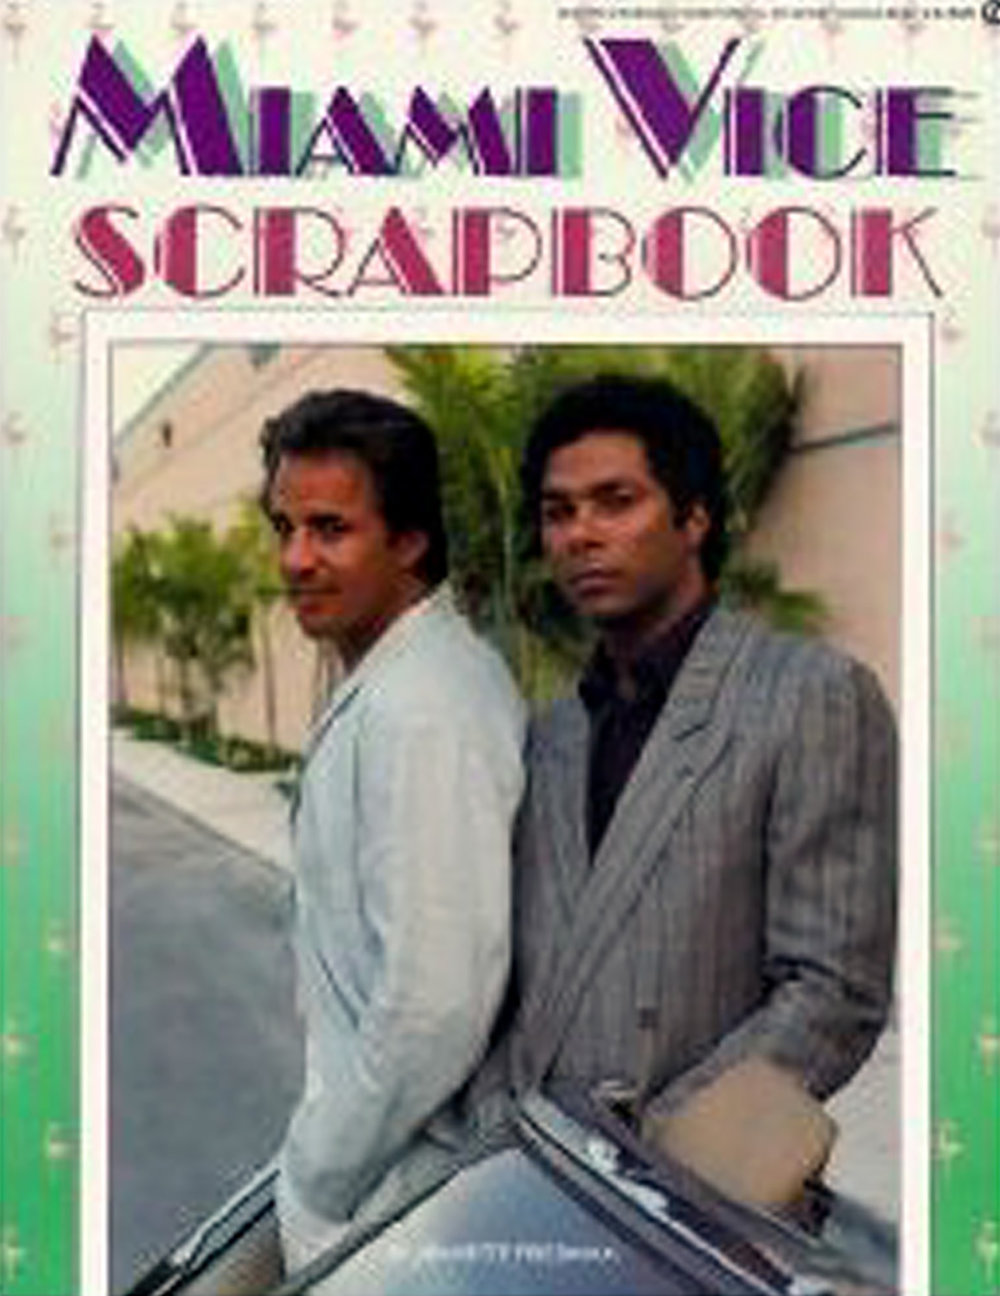 Miami Vice Scrapbook.jpg